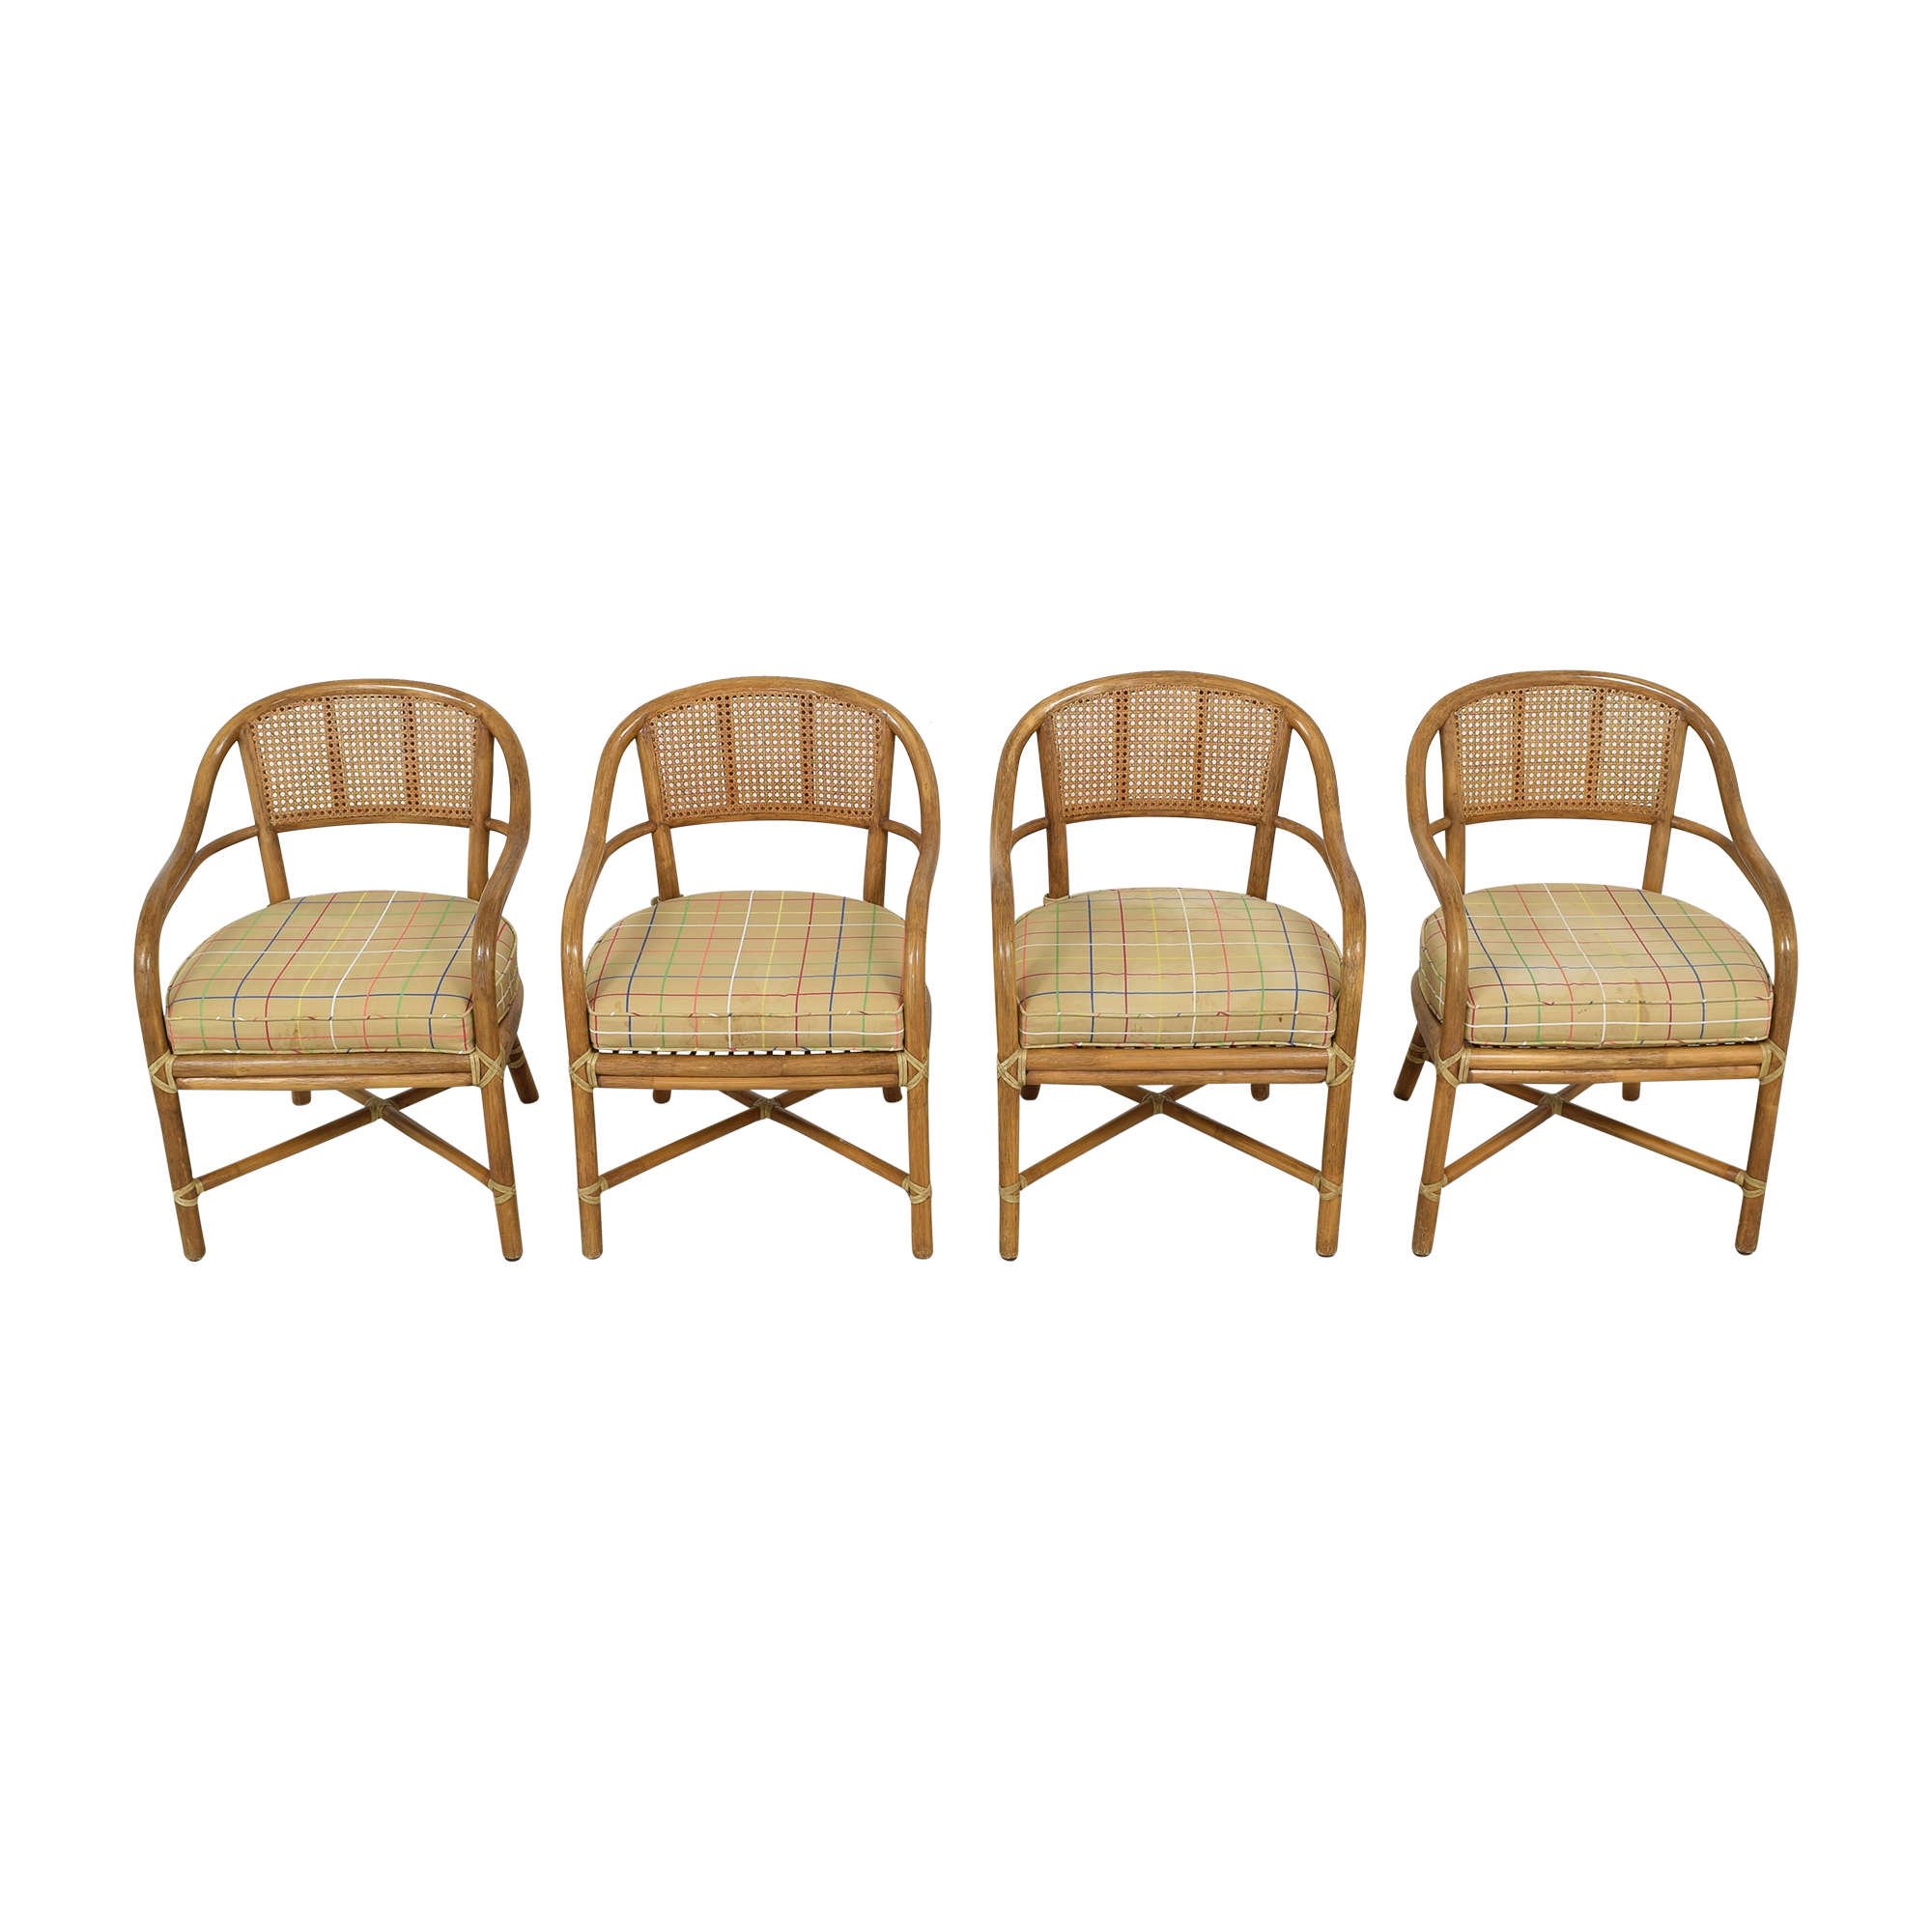 McGuire McGuire Wicker Dining Chairs nyc